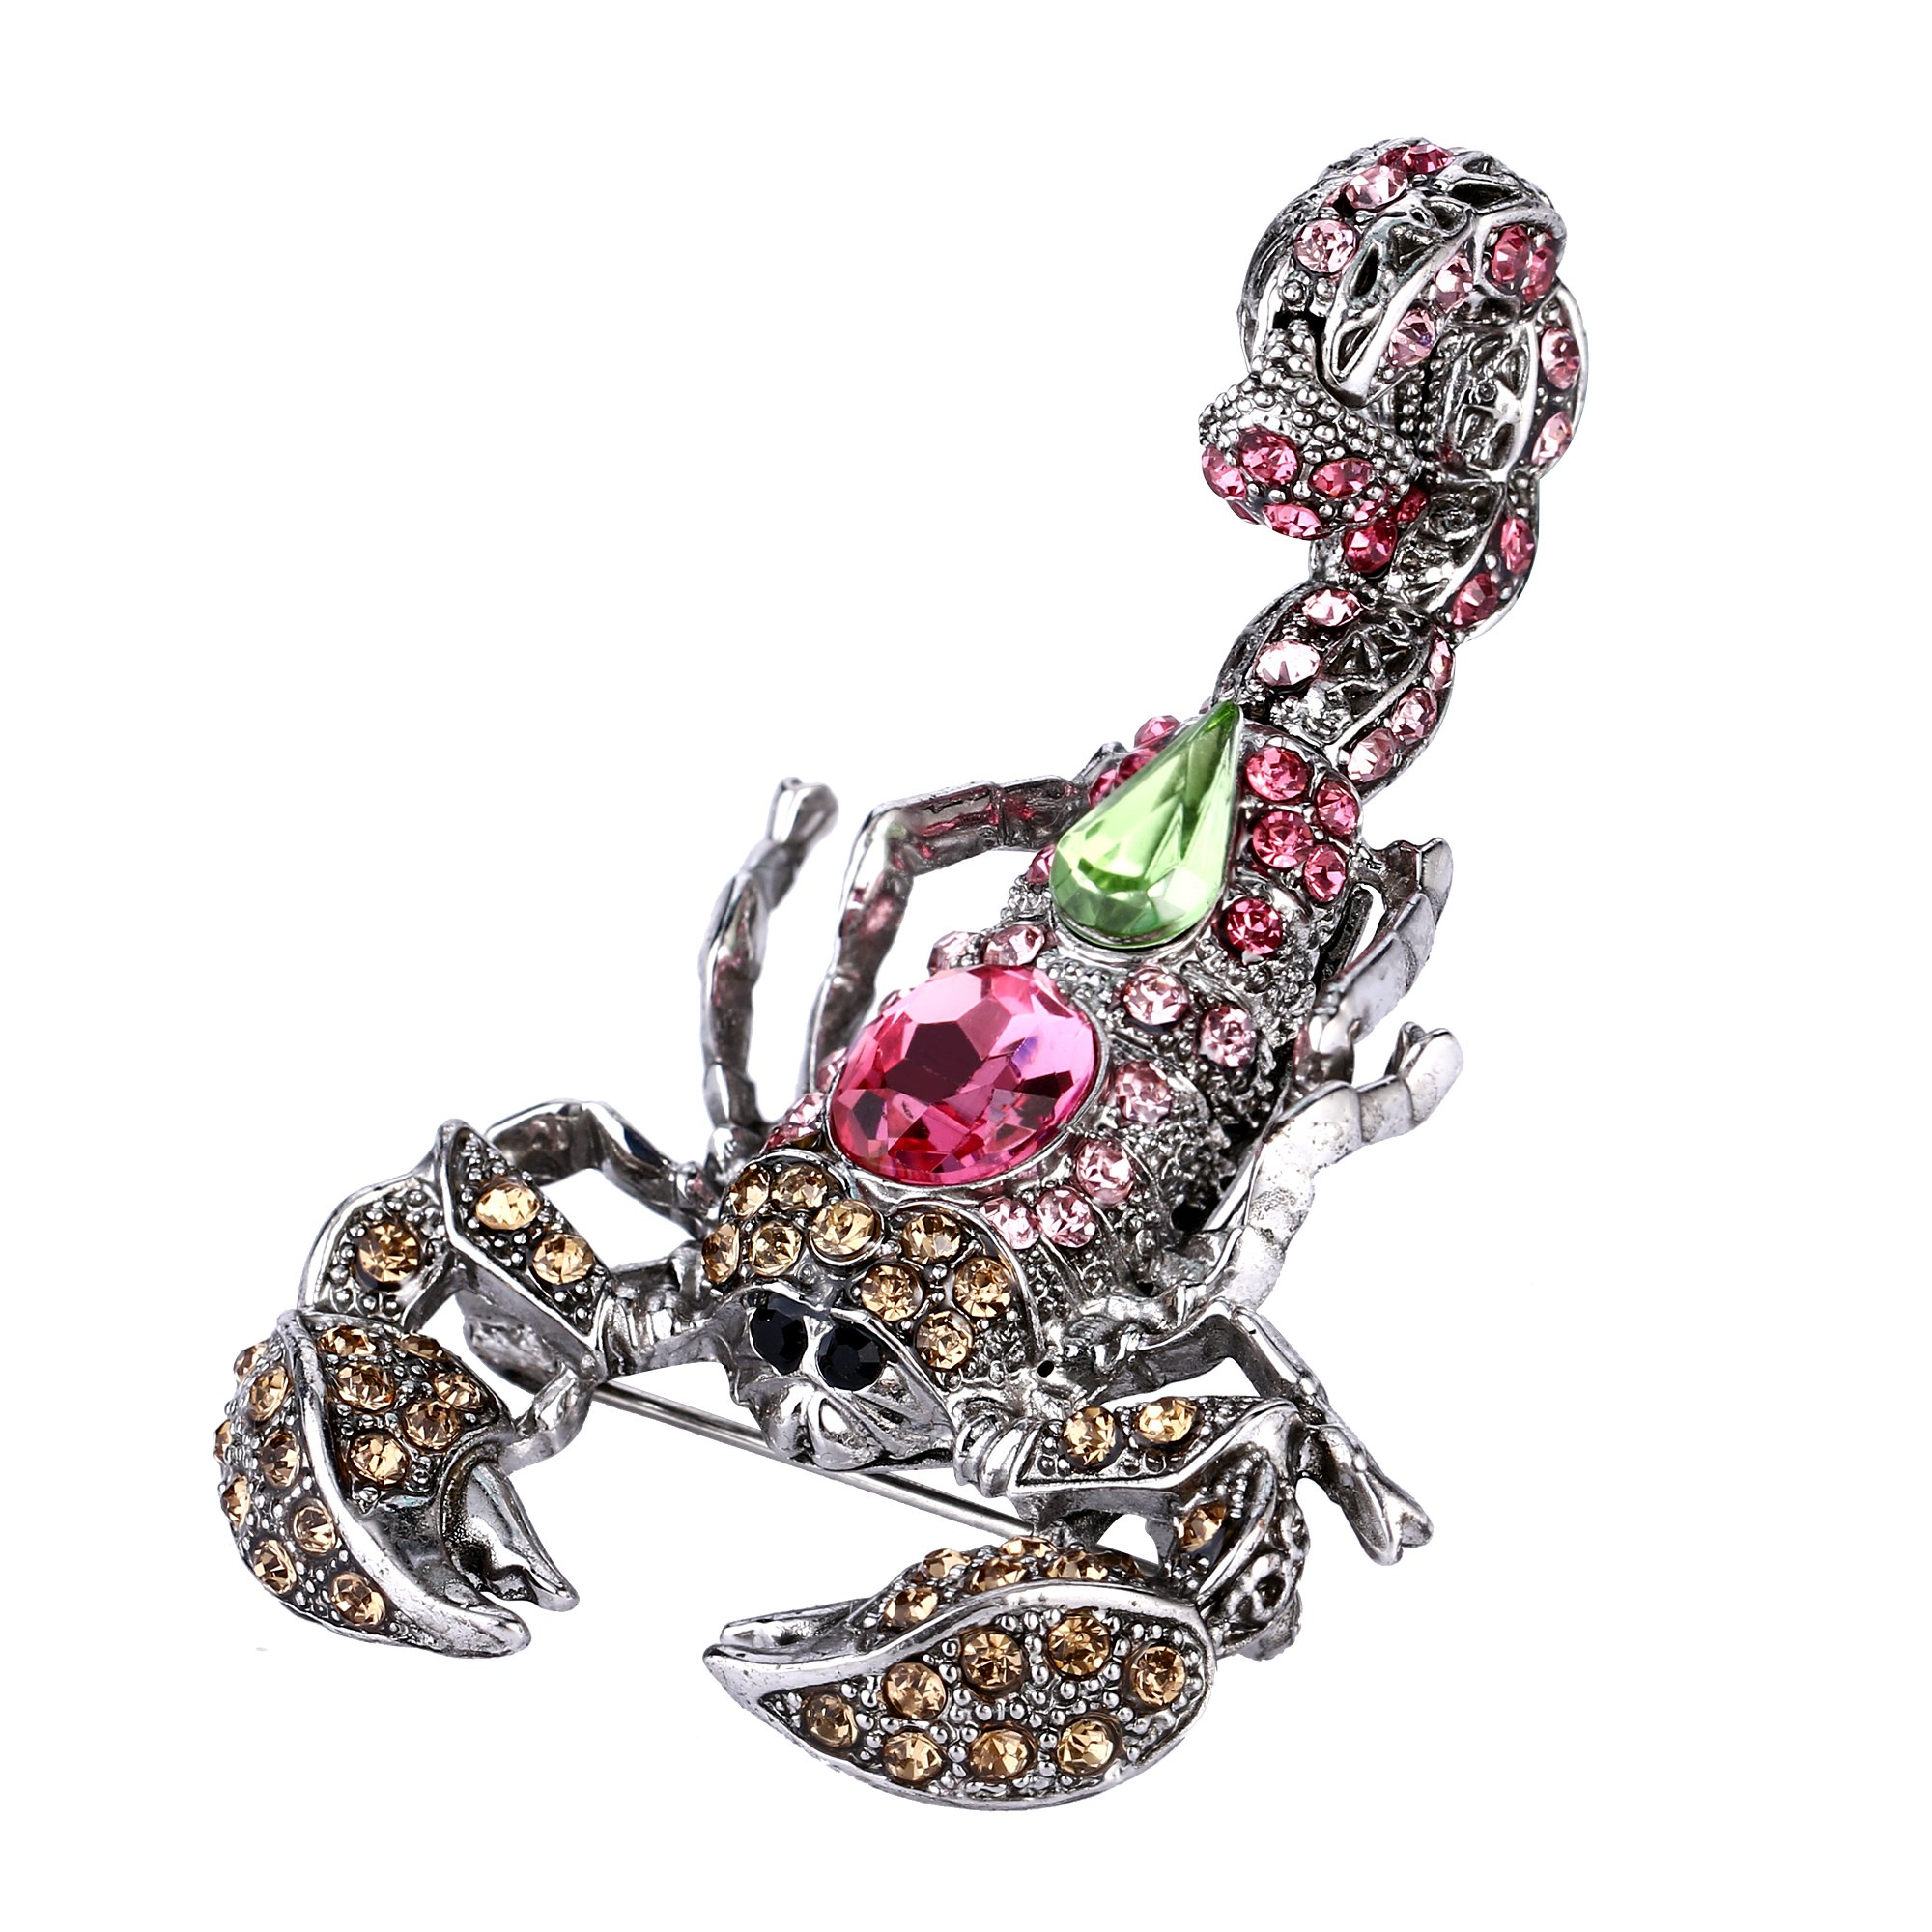 EVER FAITH Crystal Vintage Style Scorpion Animal Brooch Pink w/ Apple Green Antique Silver-Tone